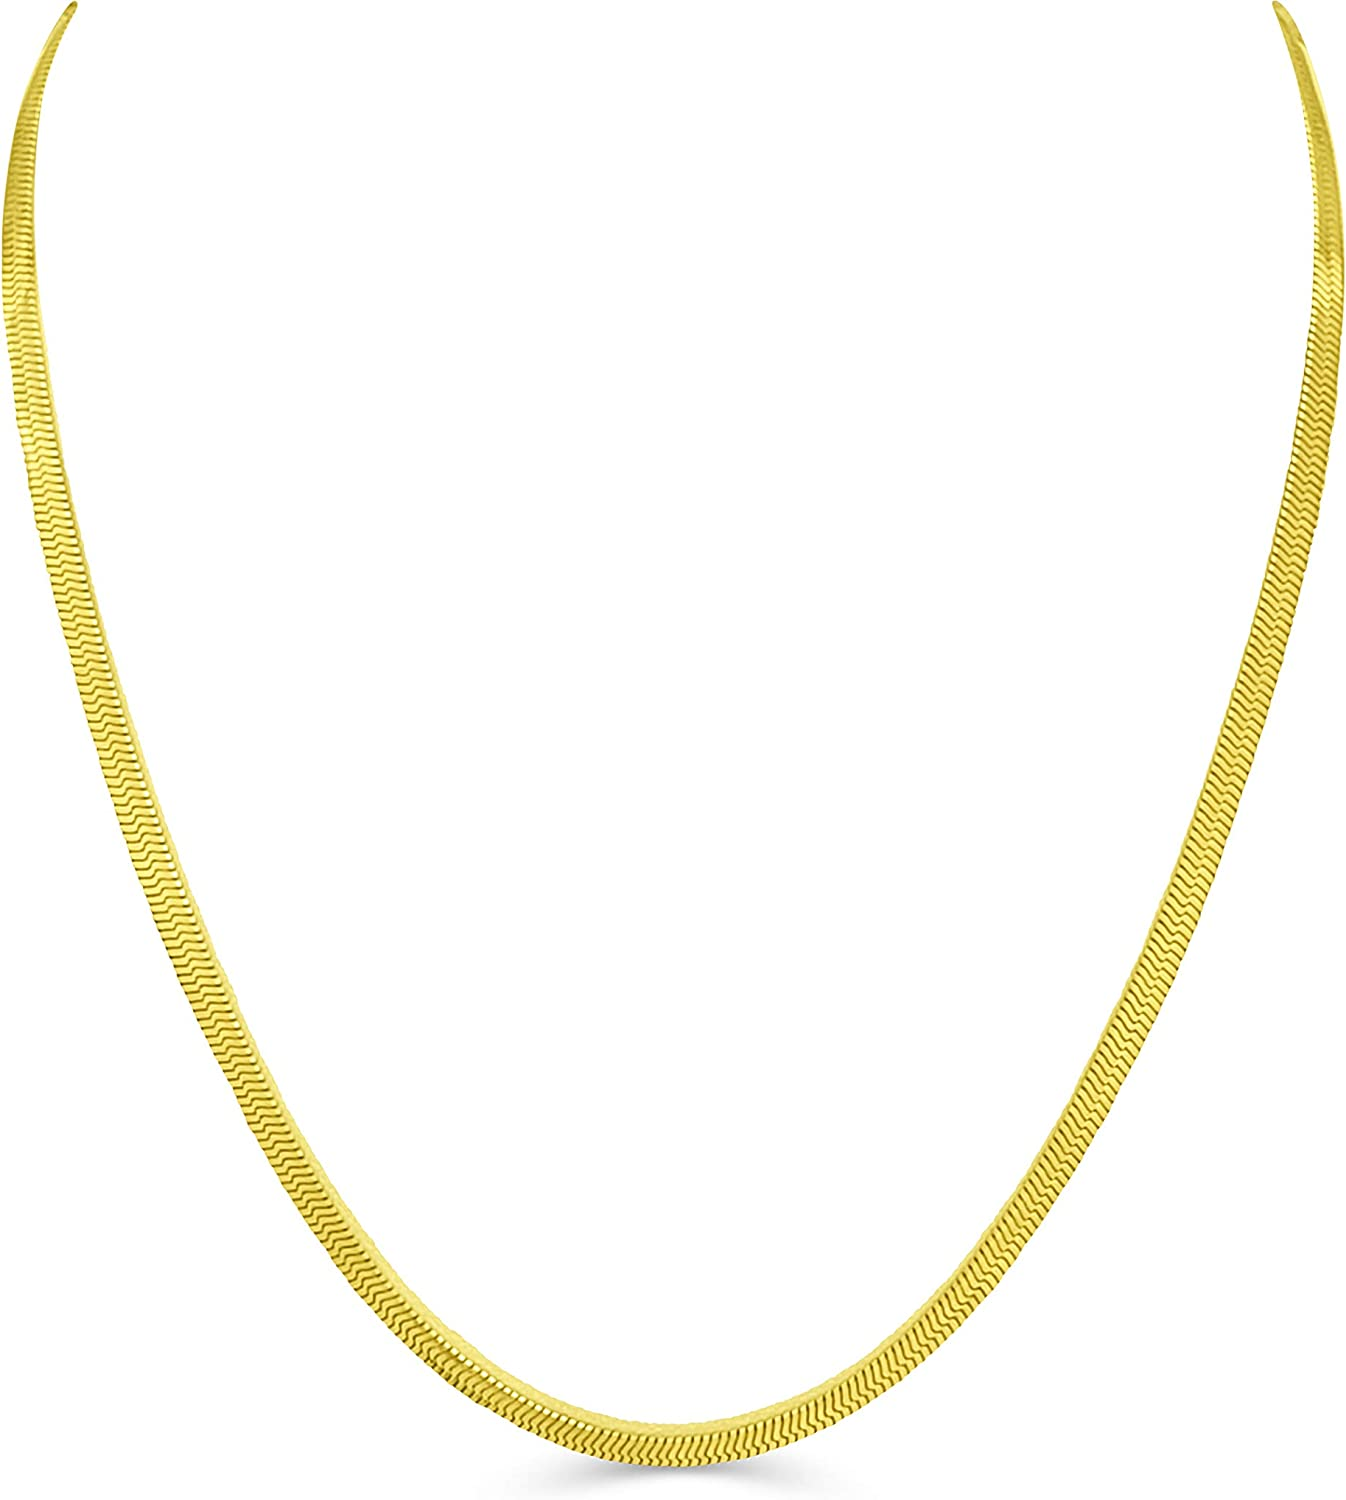 Life Time NECKLACE 3mm Gold herringbone Chain choker necklace for men women REPLACEMENT